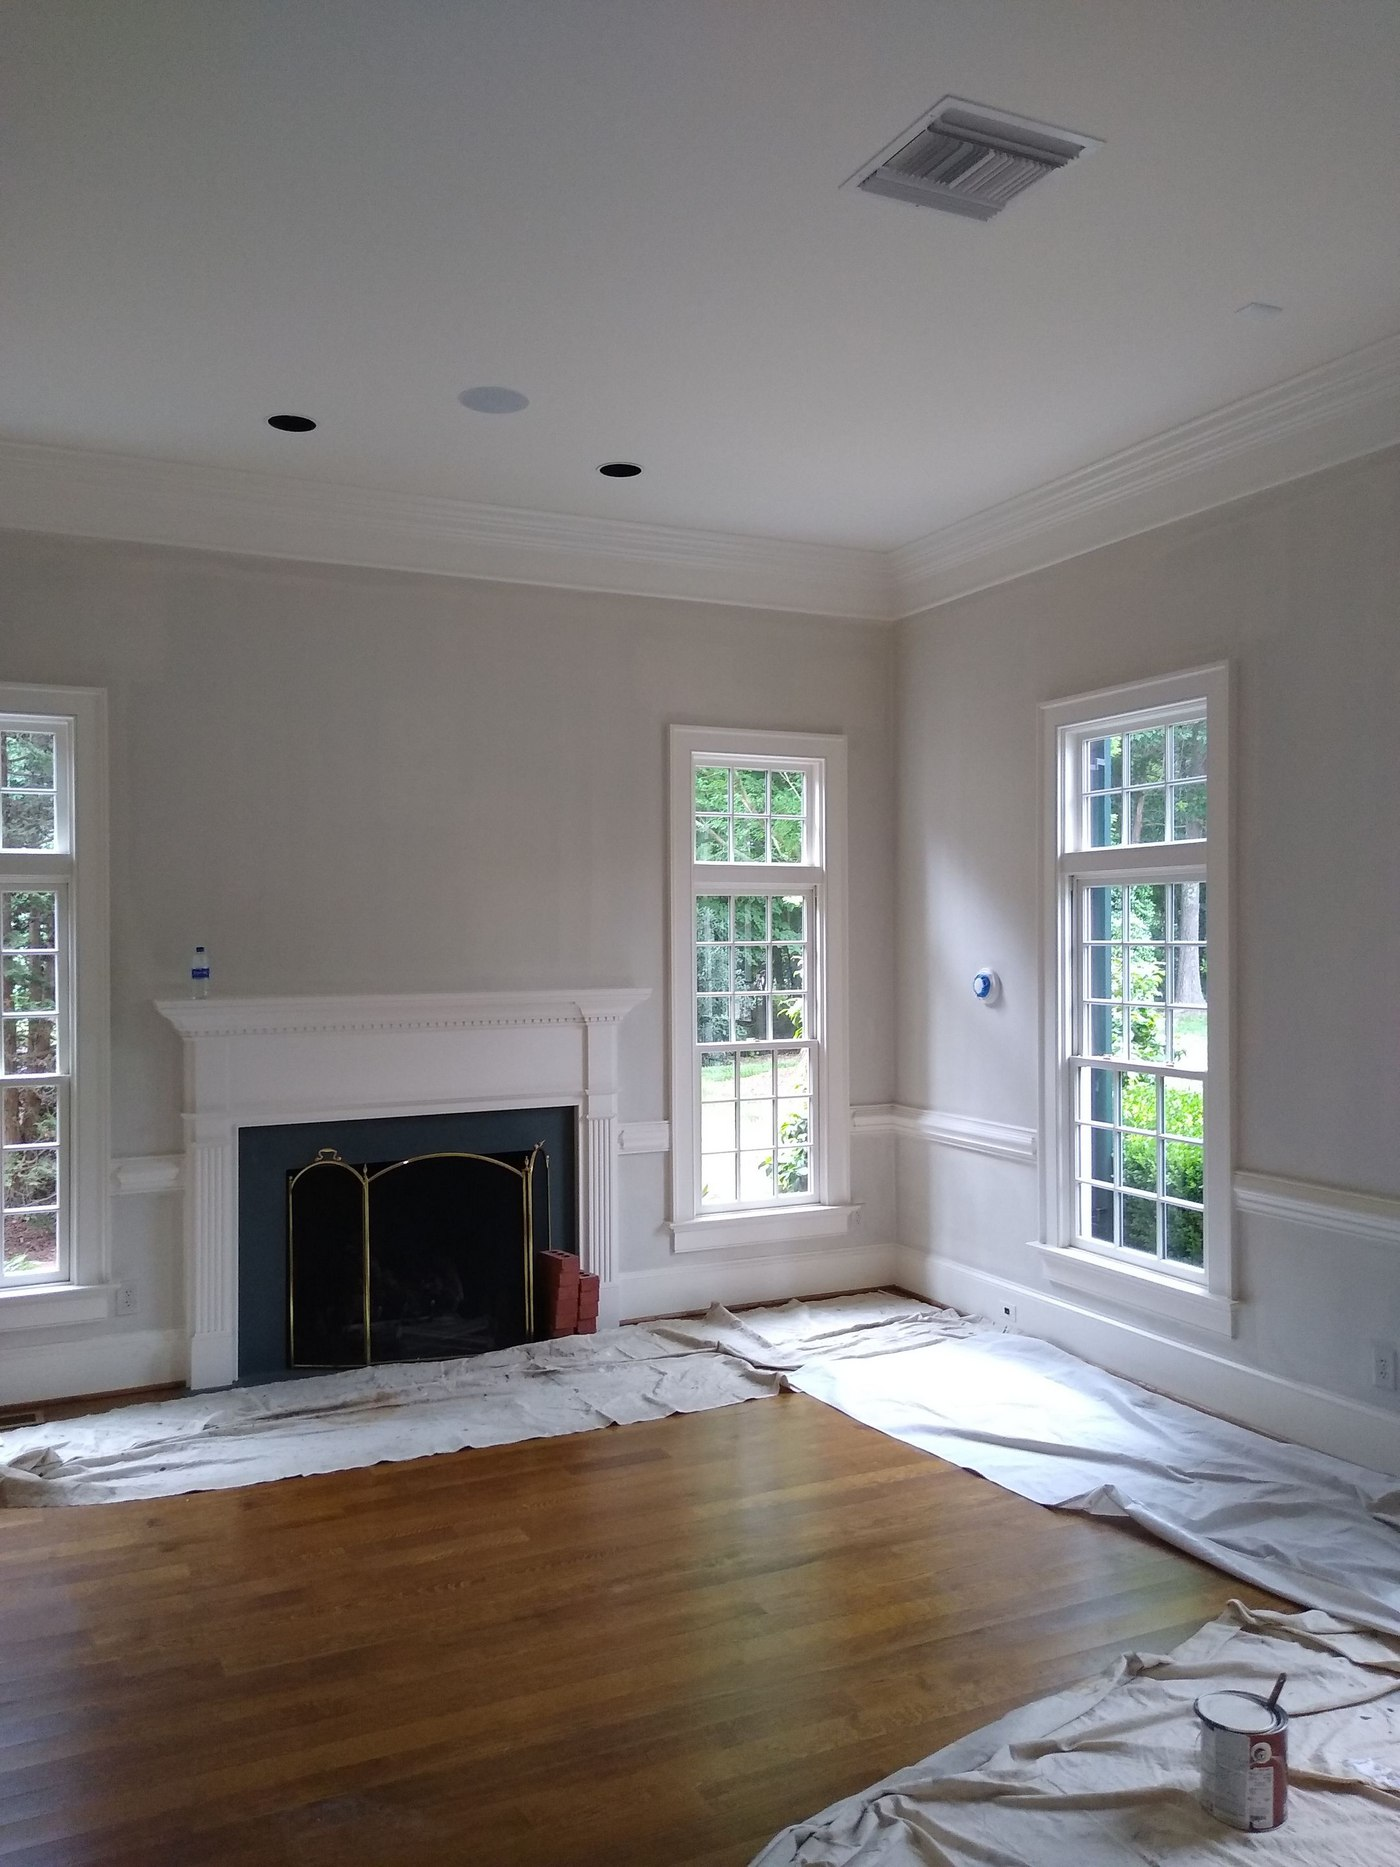 How To Prepare For Painting Walls In And On Your Home